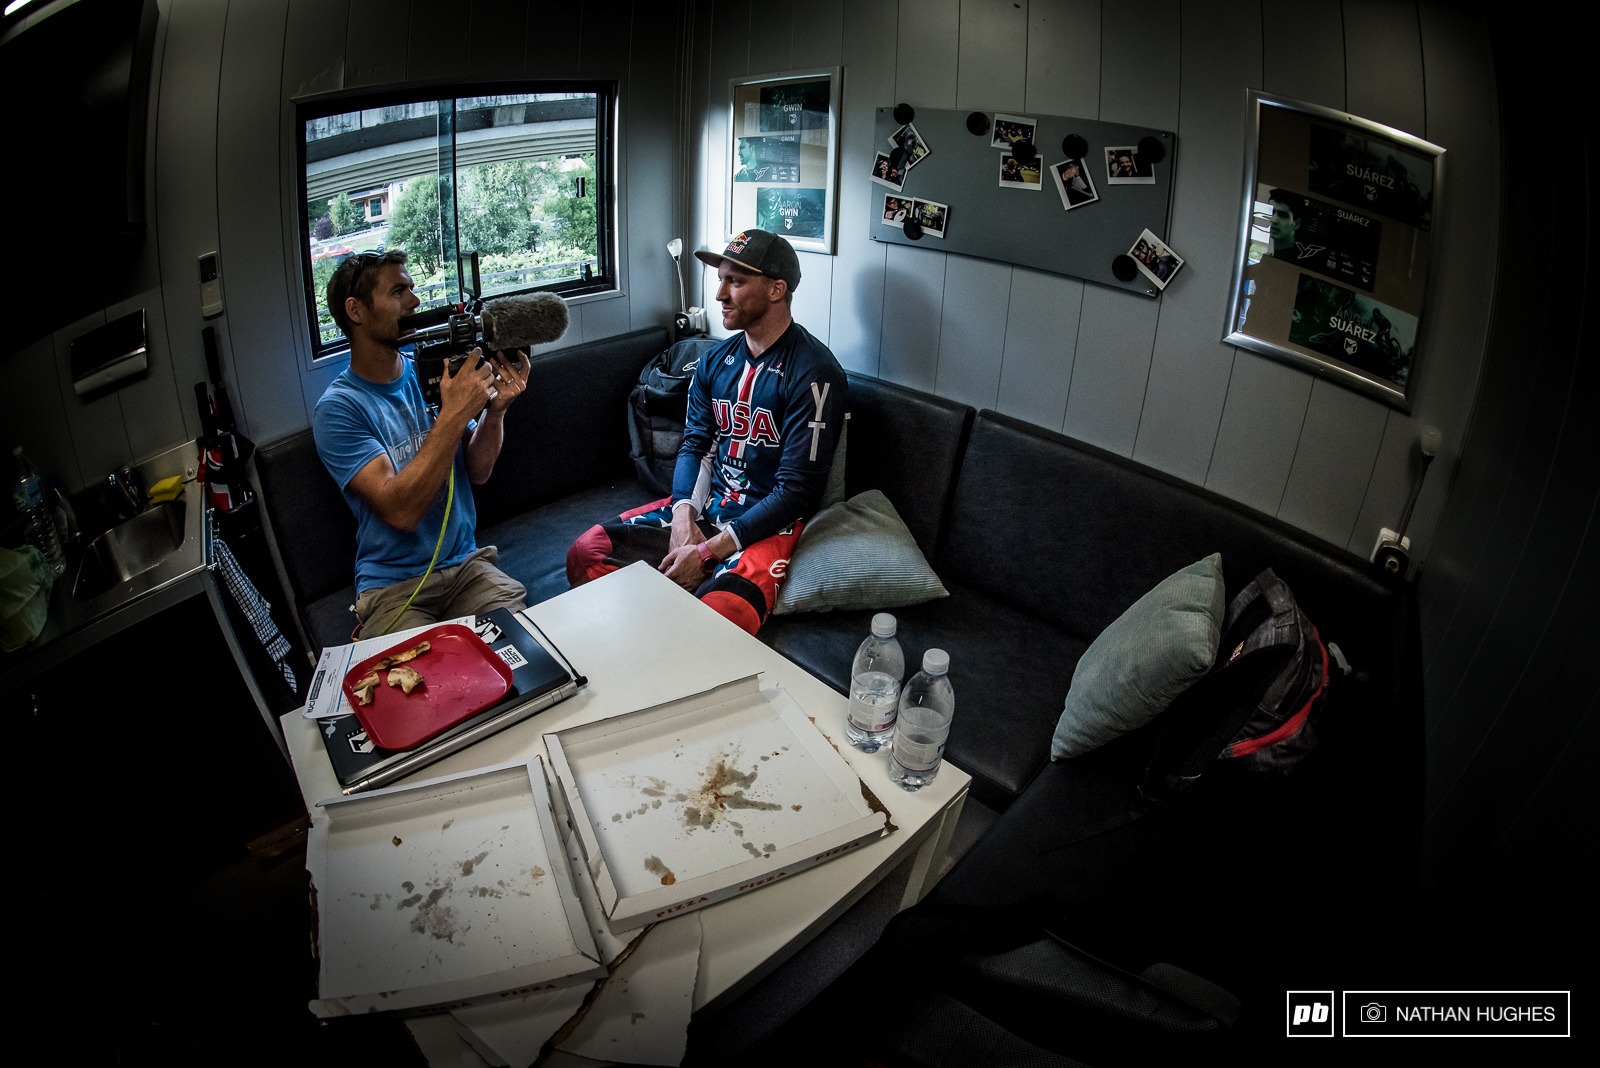 Nothing a high-quality Italian mozzarella pizza can t fix... Aaron talks about his day of bad luck on the hill with Rob Parkin for Red Bull TV.